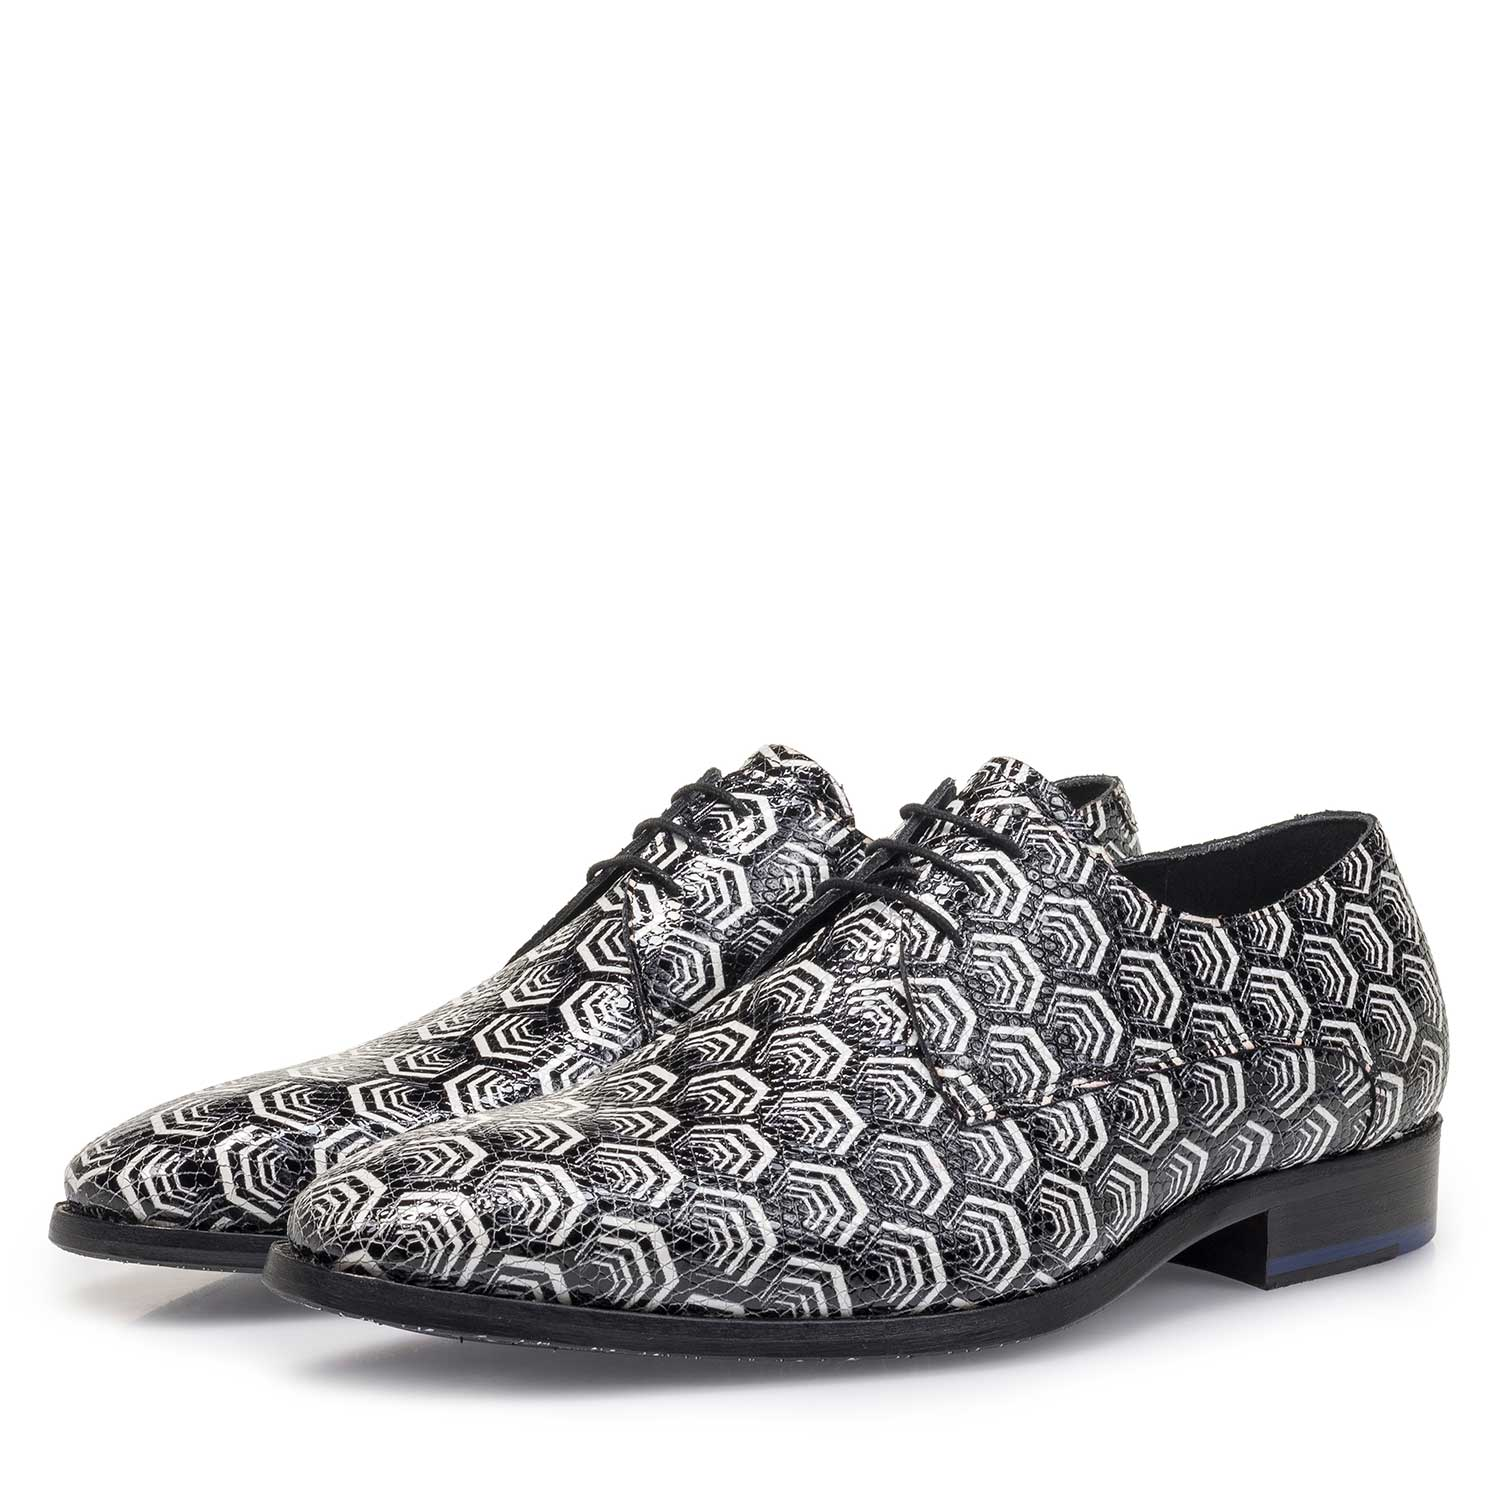 18095/01 - White calf leather lace shoe with black print